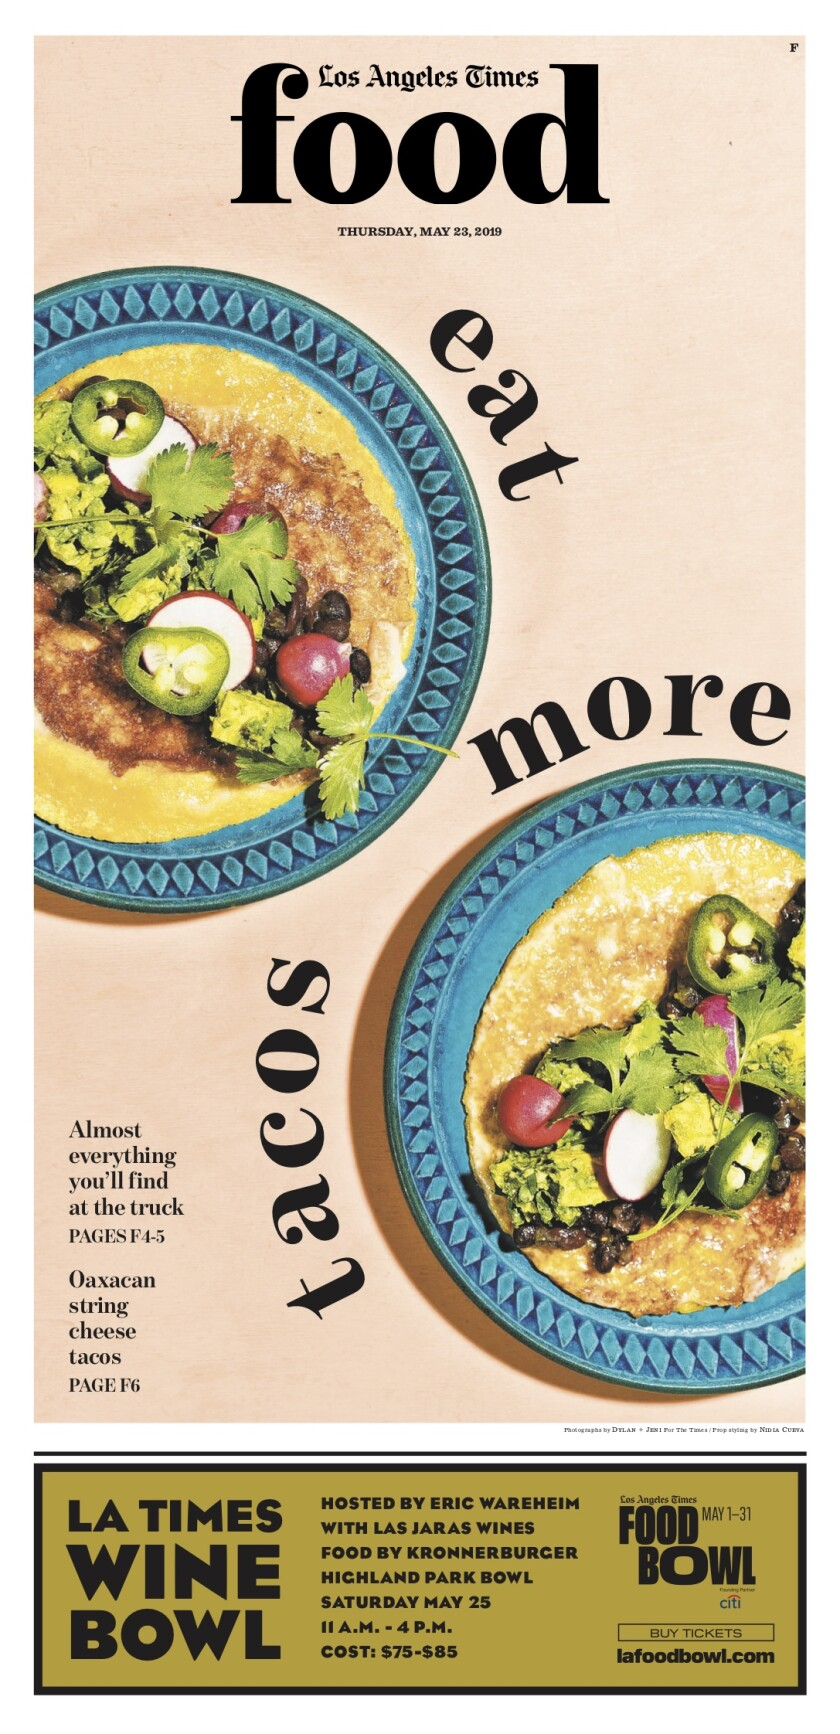 Los Angeles Times Food cover, May 23, 2019